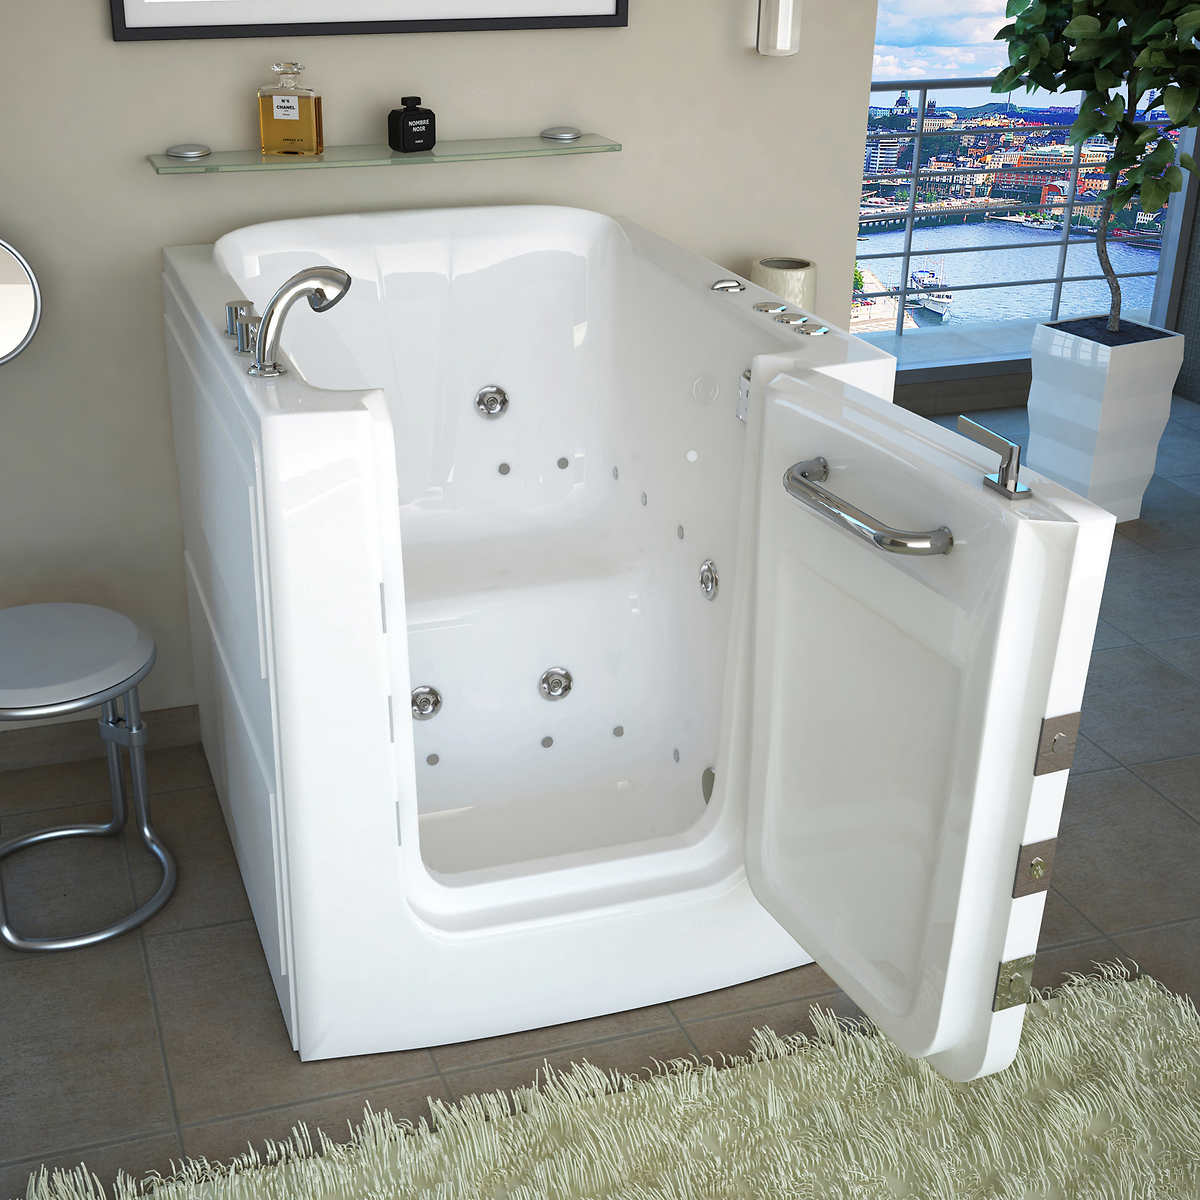 Access Tubs Walk in Air Hydro Jetted Massage Tub. Tubs